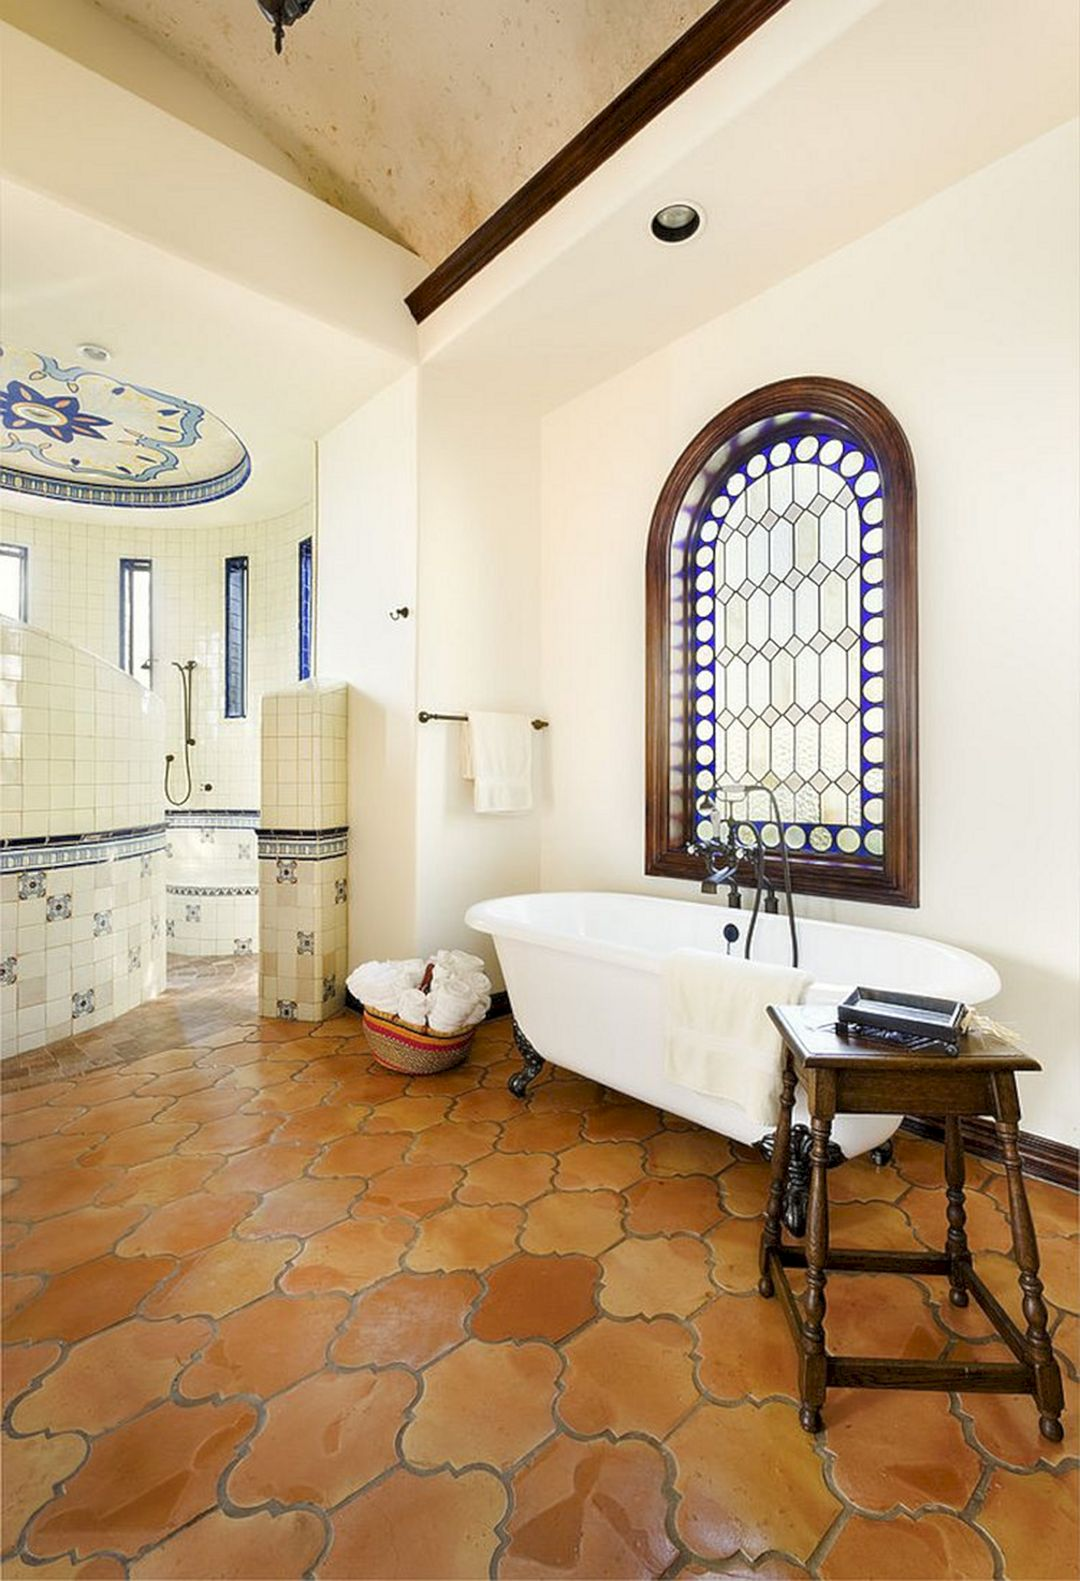 Spanish-Mediterranean-Bathroom-Designs.jpg